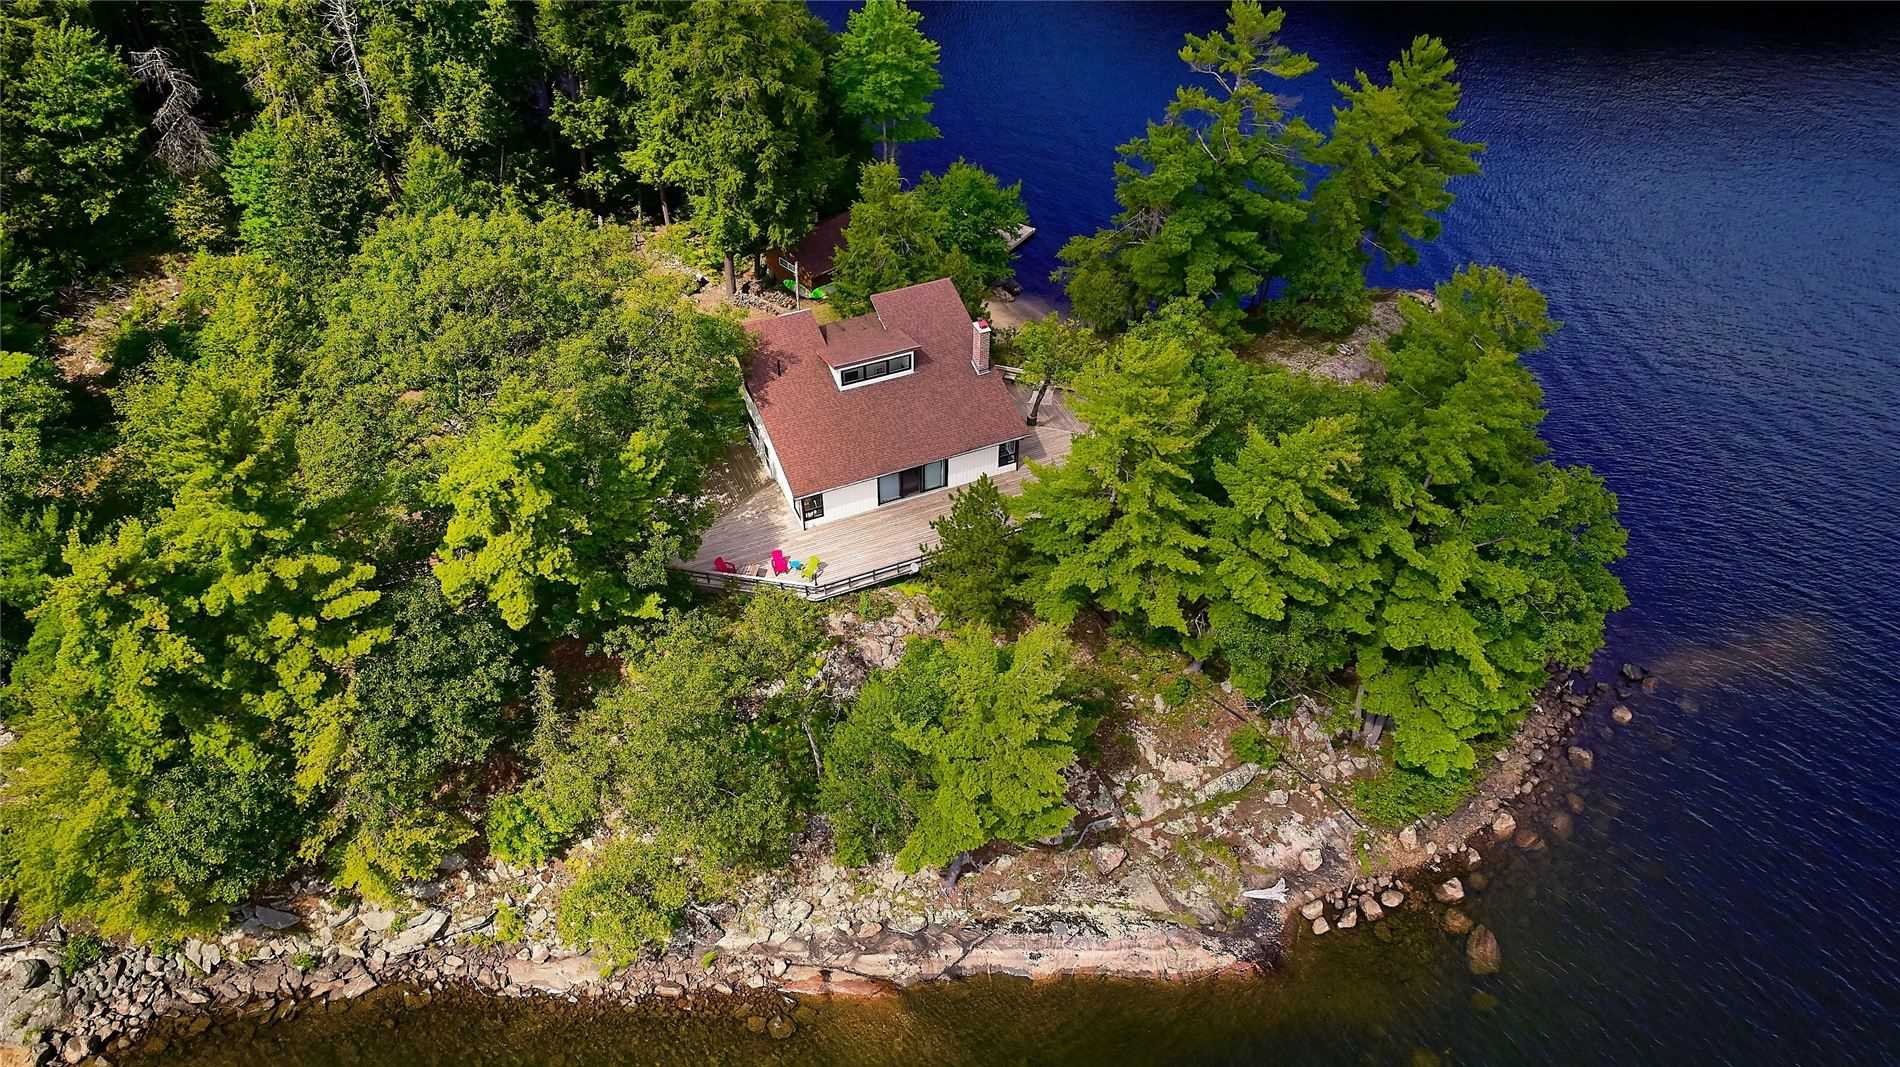 The World Has Changed, And You Deserve Your Private 3.6 Acre Island,1880 Feet Of Frontage, With Two - Natural, And Man Made -  Beaches. Easy Short Drive From Toronto With . Potential For Helipad, And Severance Into 2 Lots.  Paths For Walking, Mountain Biking, In Your Own Private Forest.